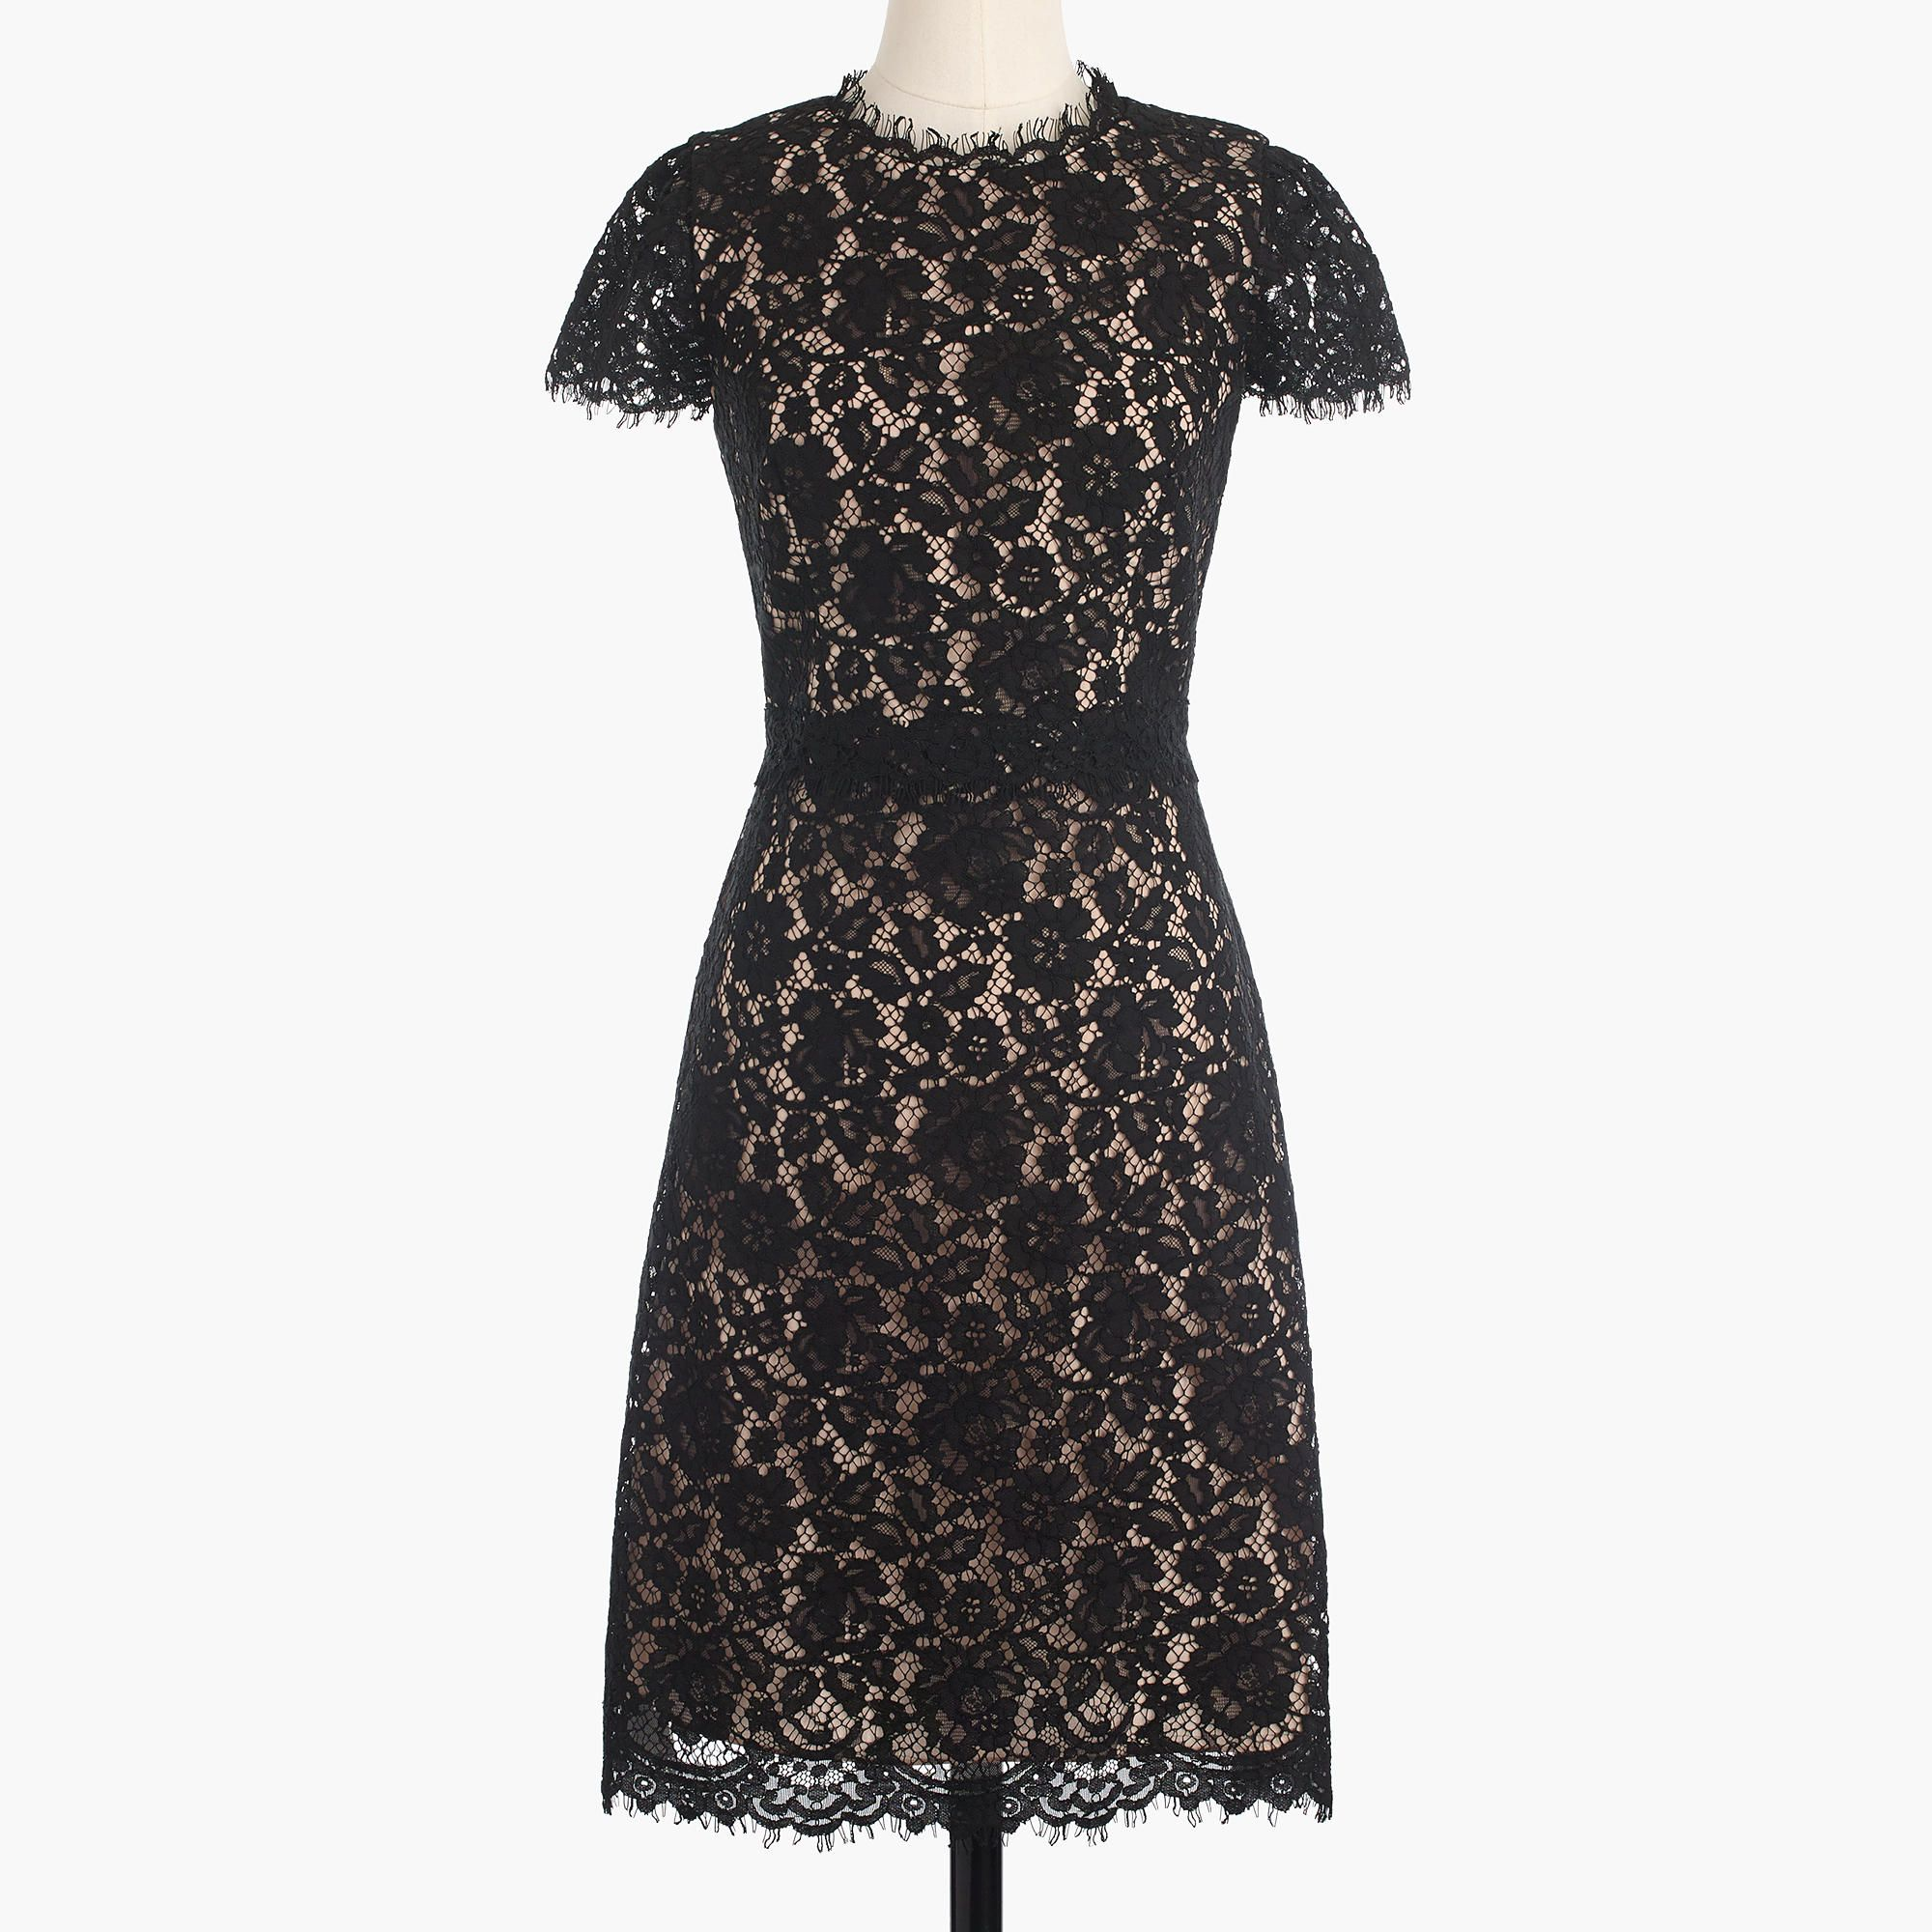 J crew black lace dress  Collection lace fitandflare dress  Collection Special occasion